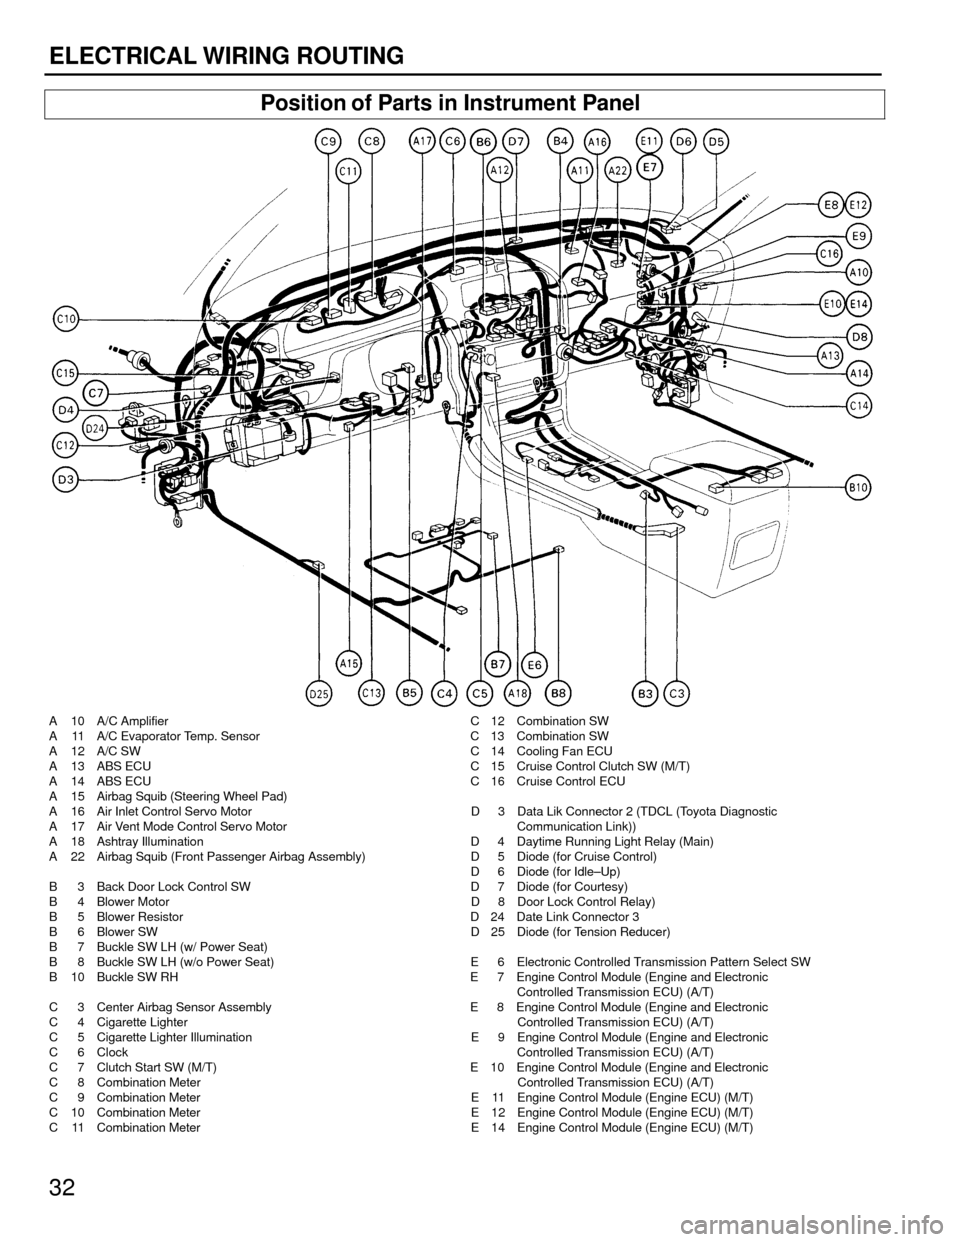 TOYOTA CAMRY 1994 XV10 / 4.G Wiring Diagrams Workshop Manual